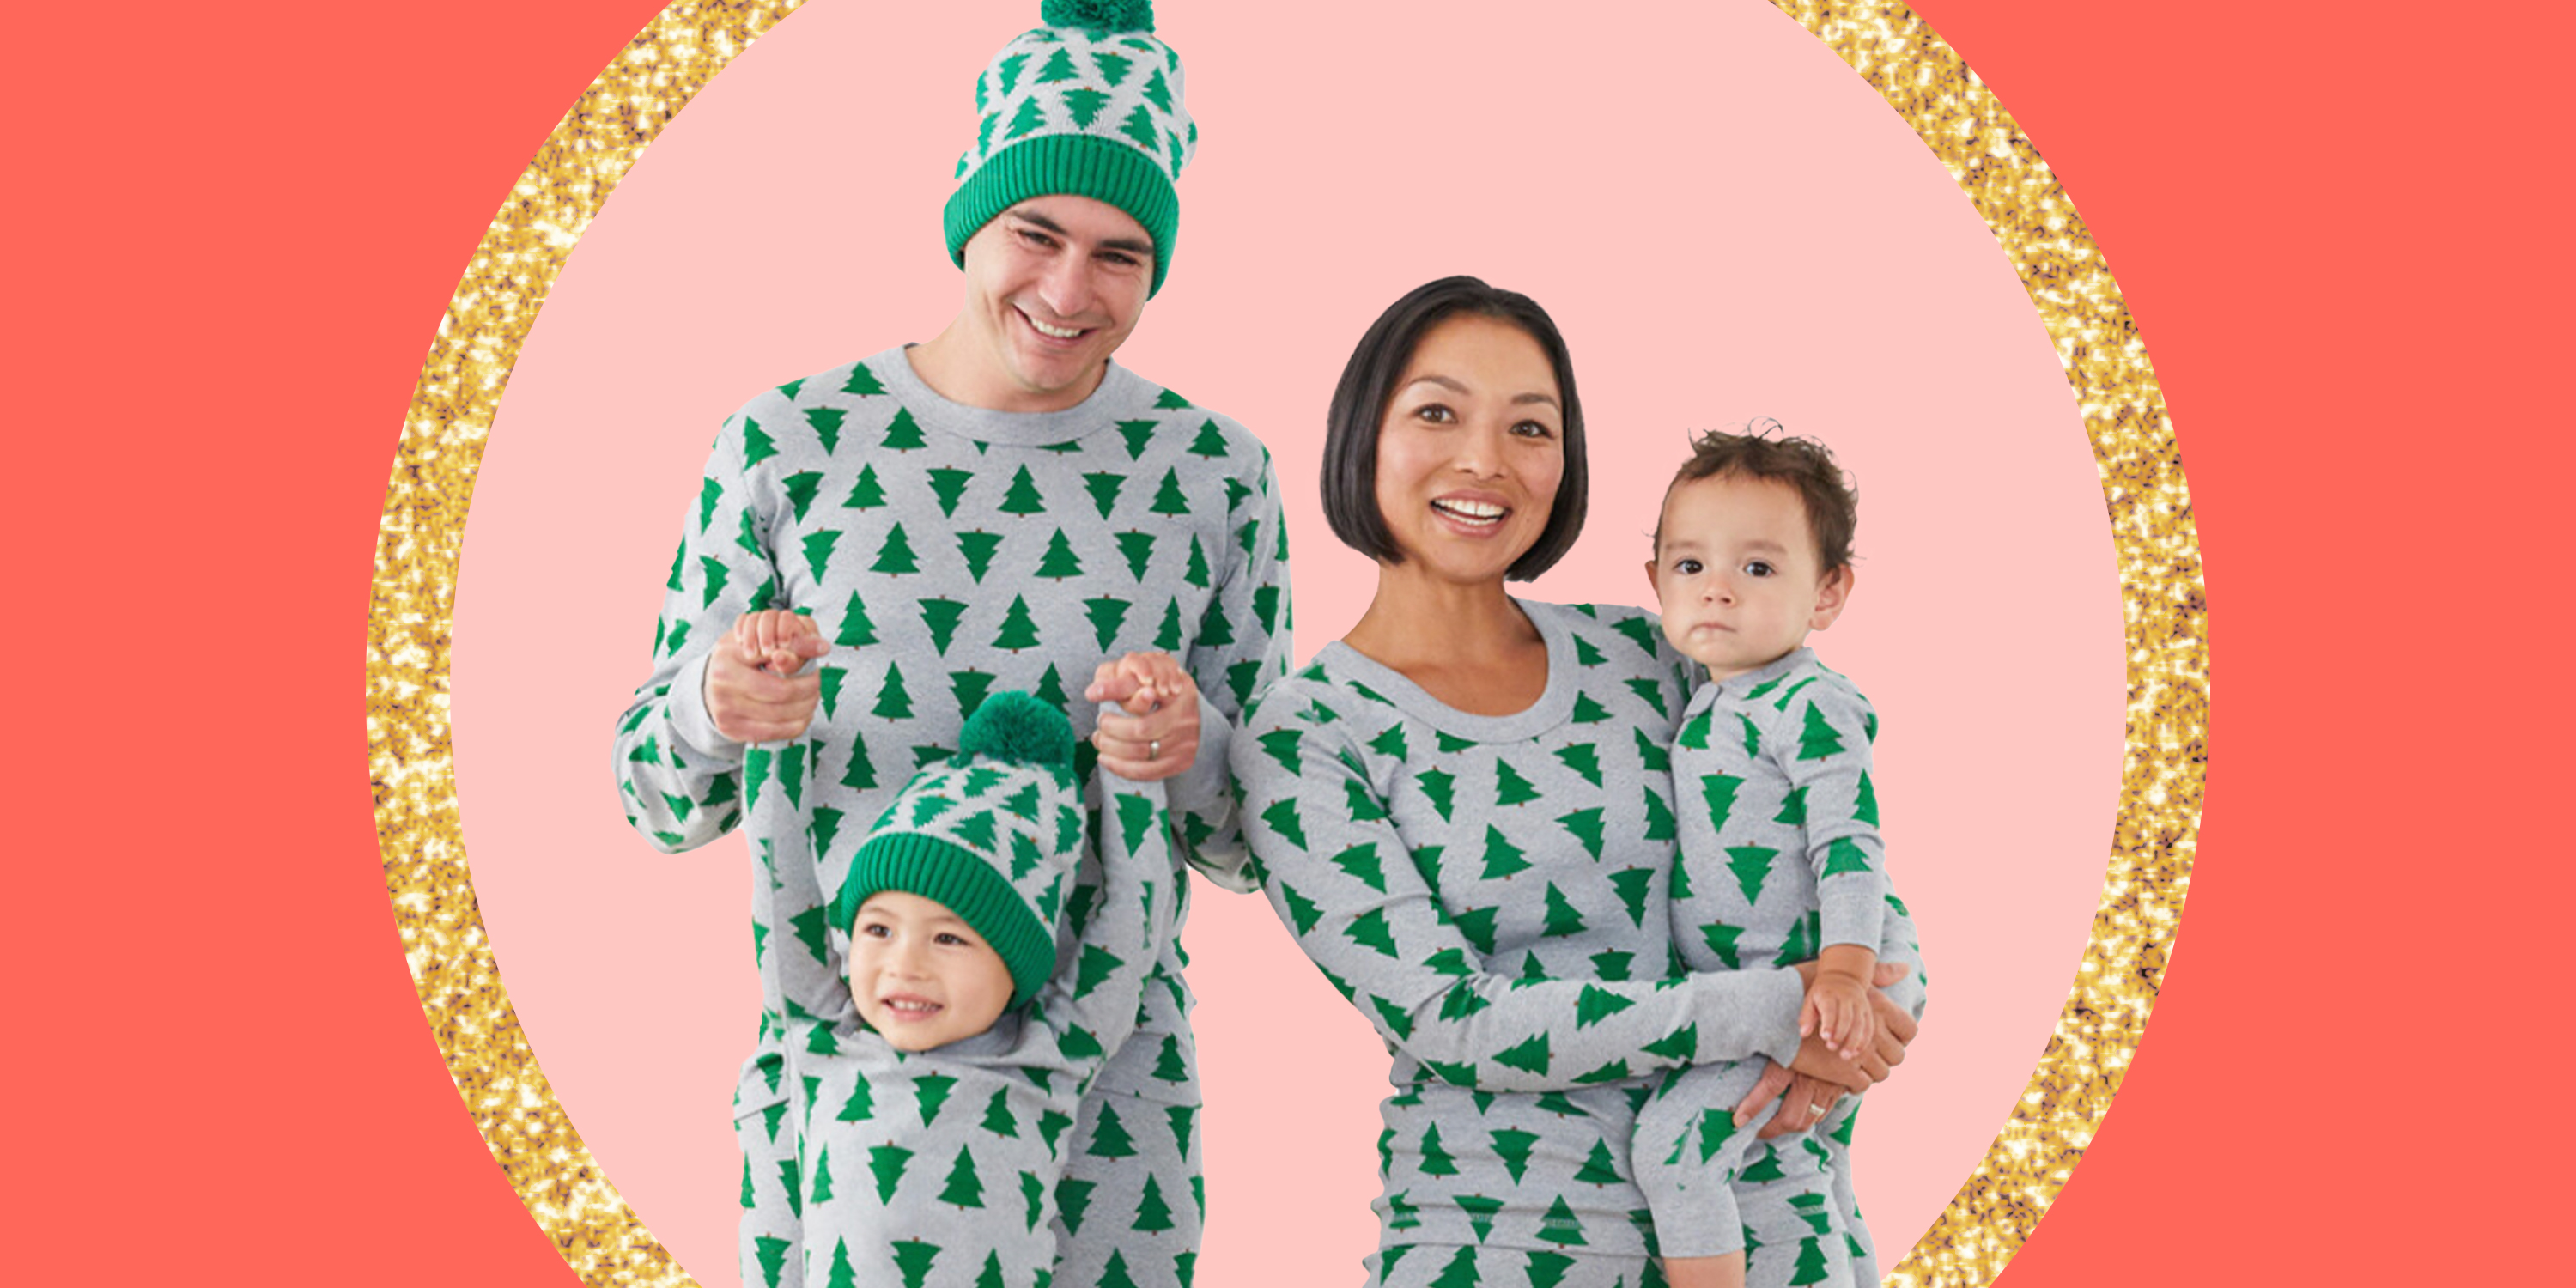 Little Pajamas Holiday Family Matching Pajamas Sets Toddler Pjs Sleepwear